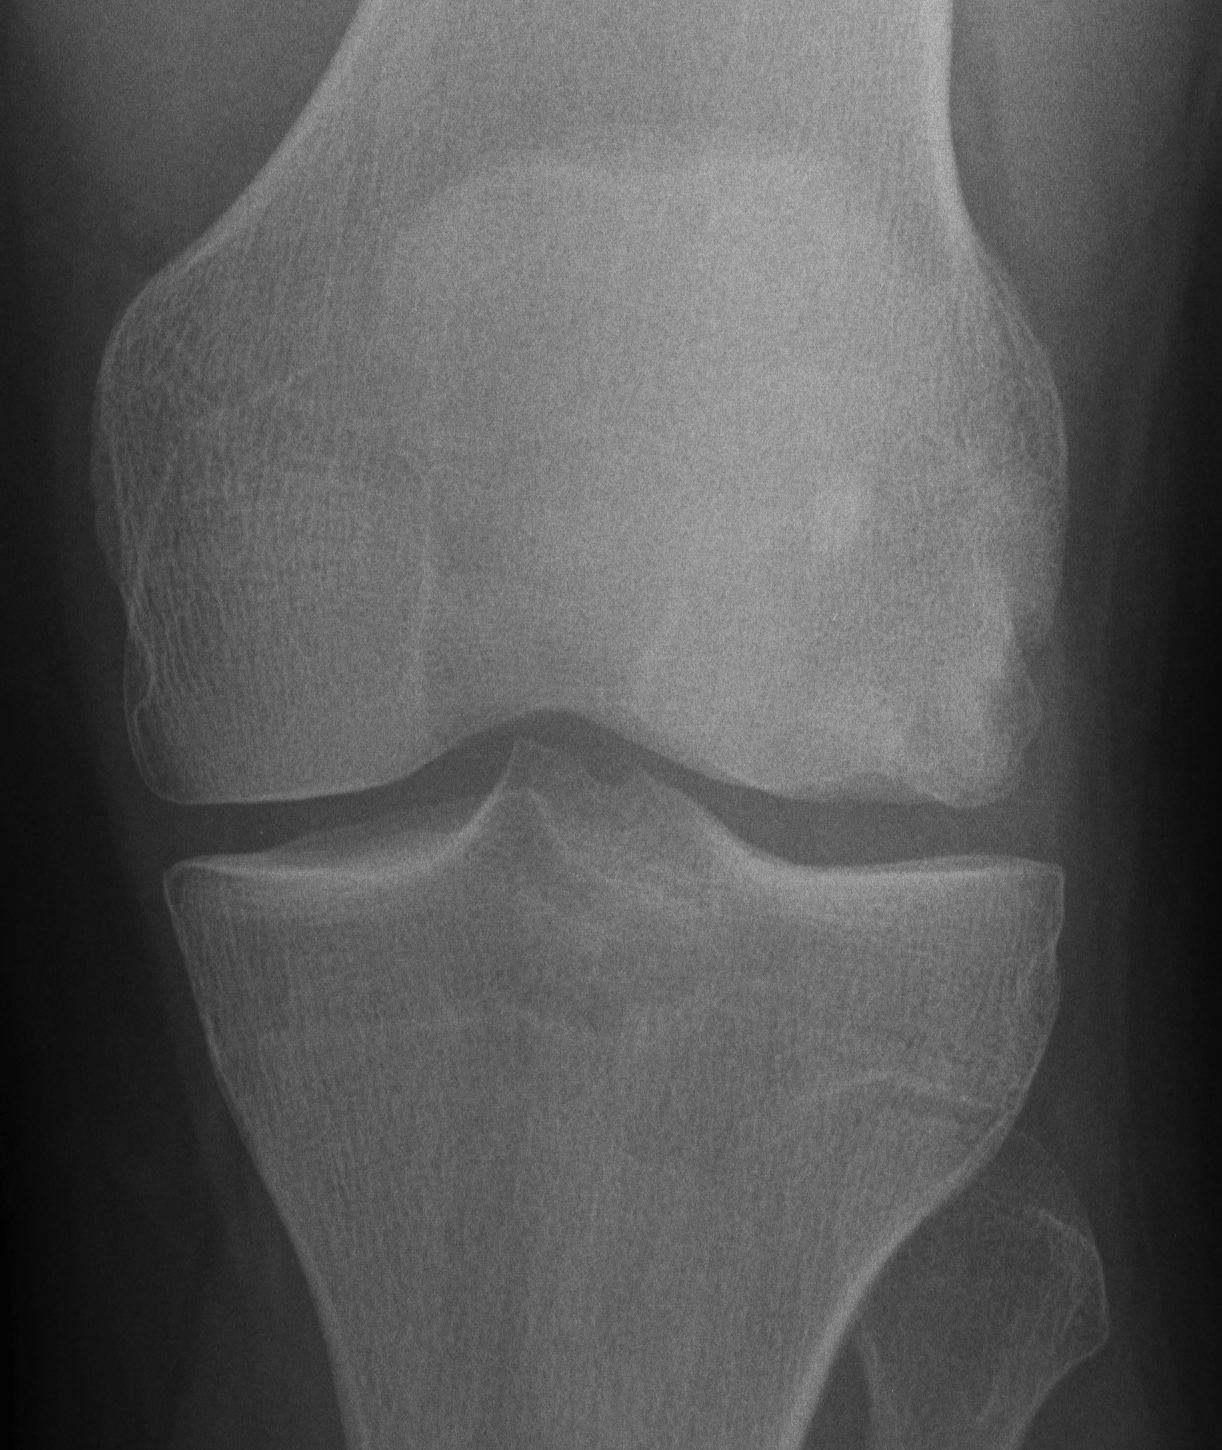 Knee OCD Lateral Femur AP